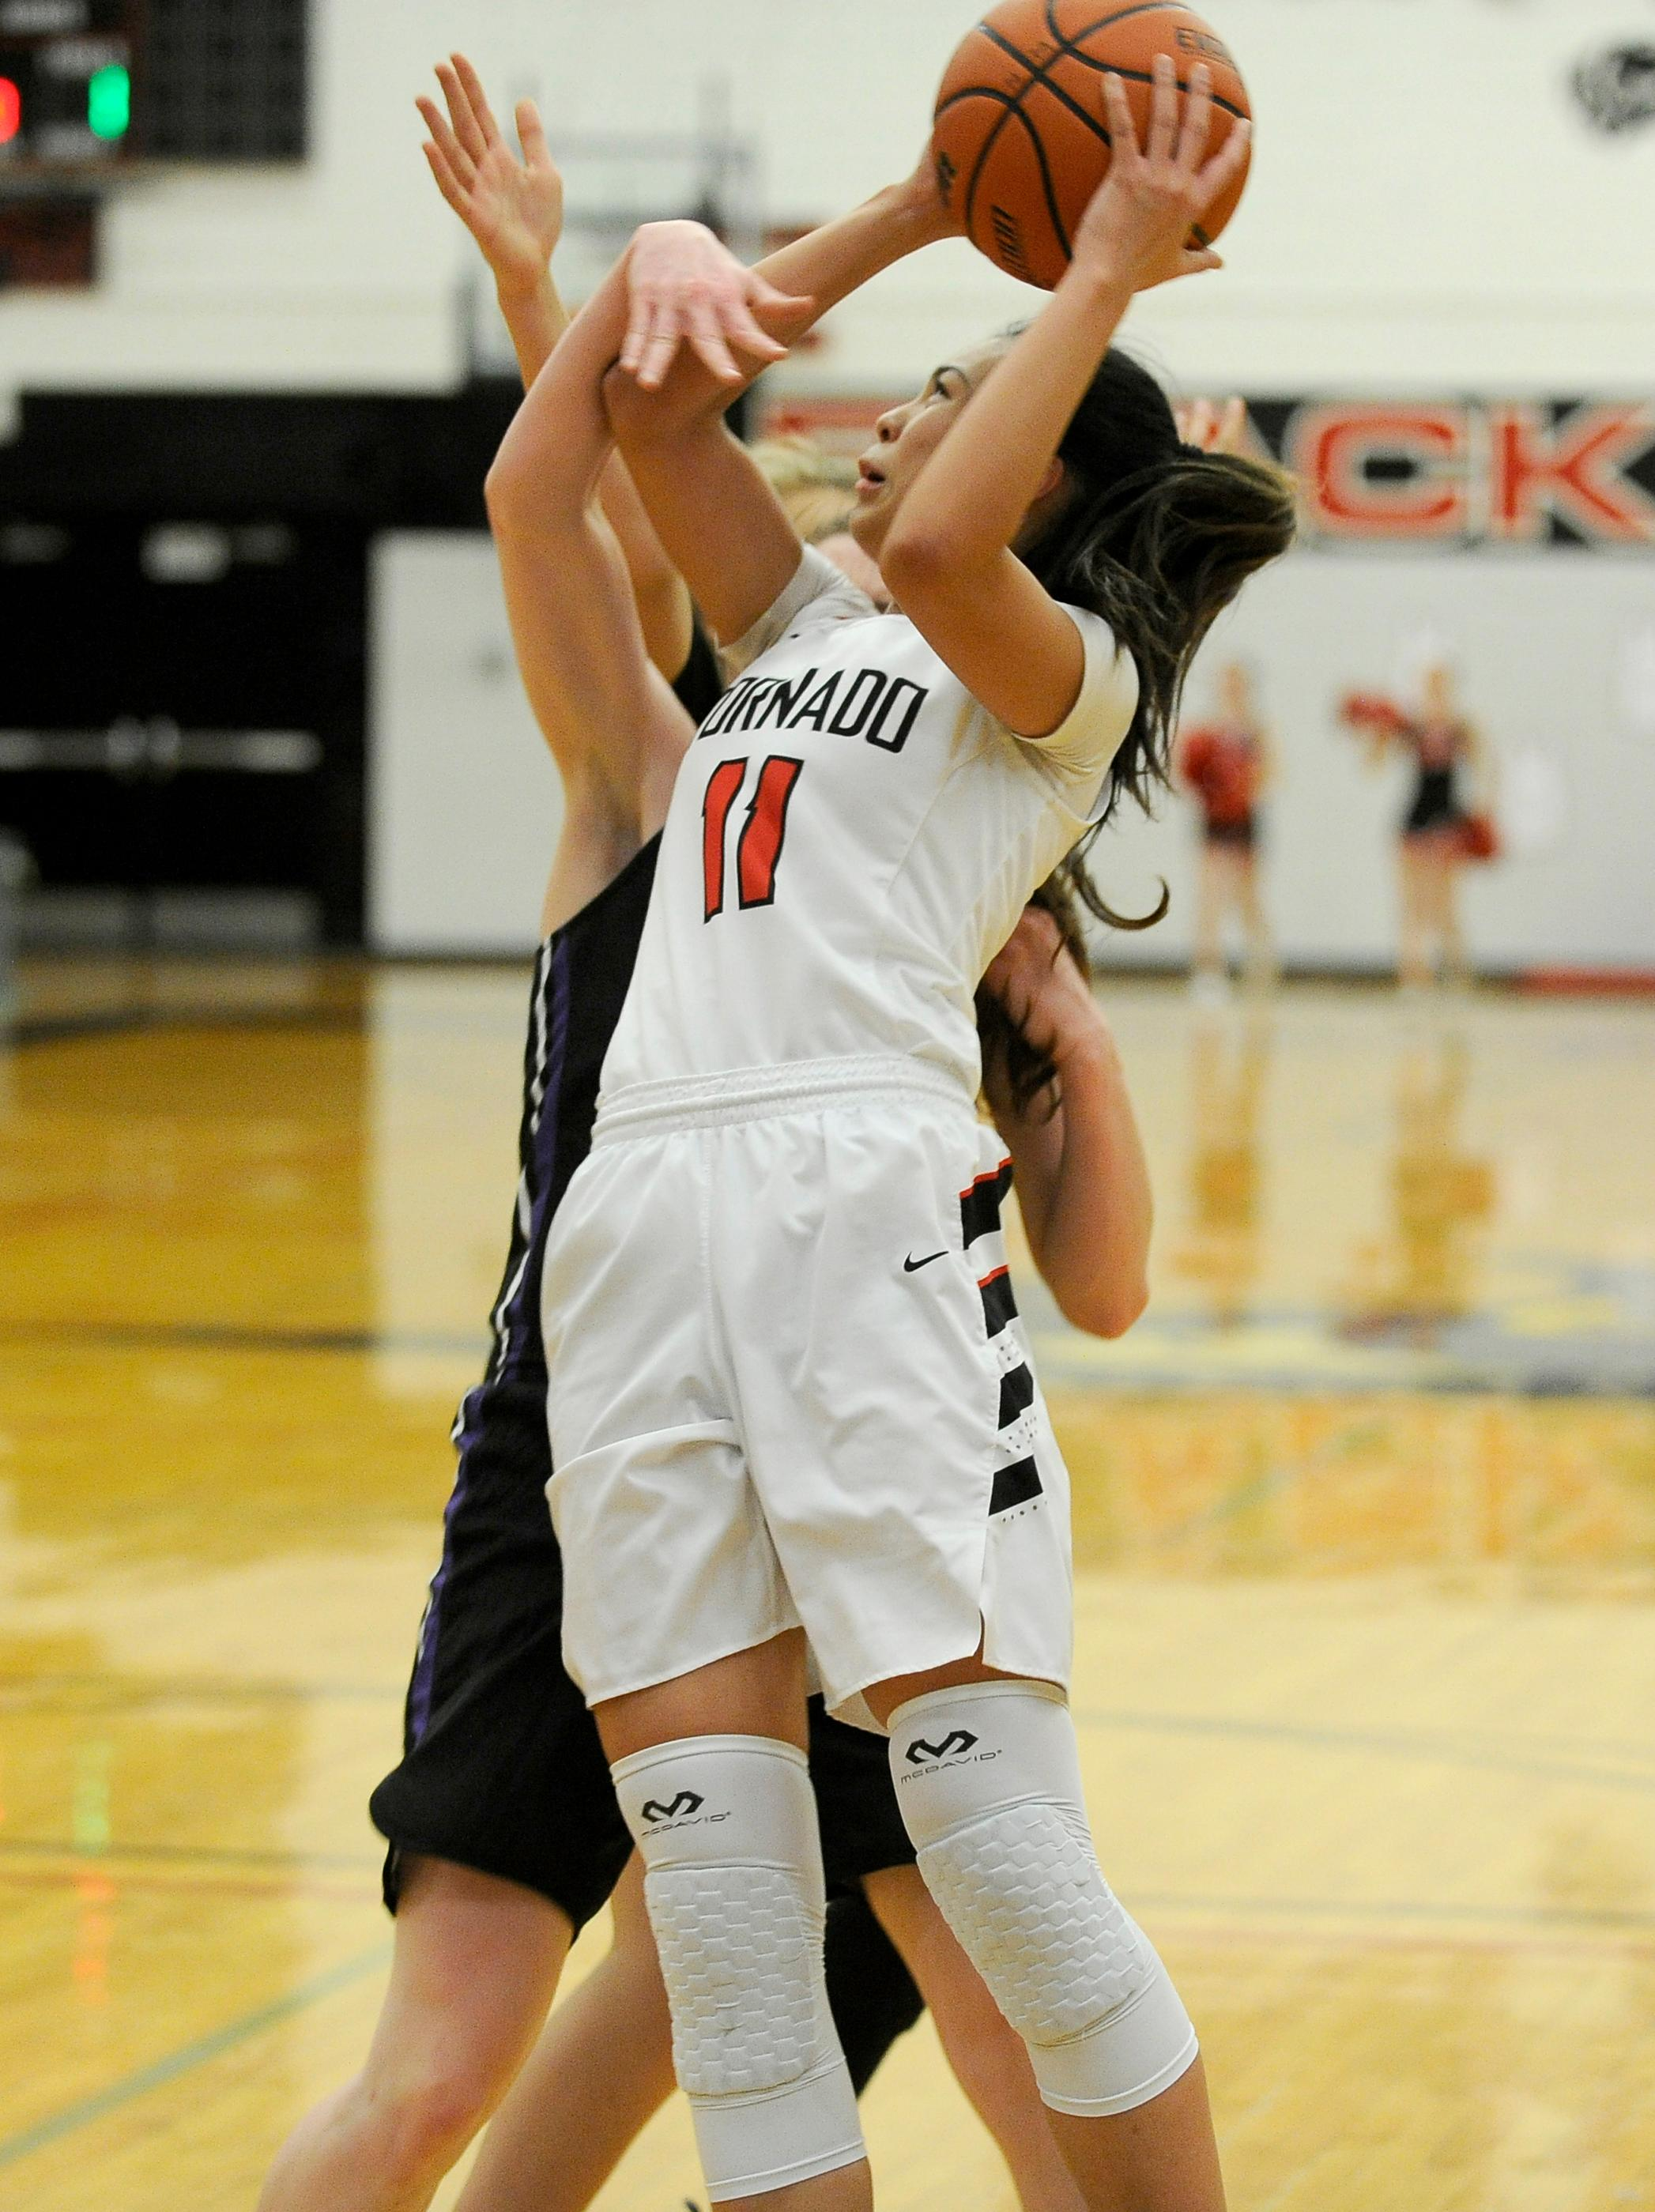 Andy Atkinson / Mail TribuneNorth's Talia Baker gets fouled going to the rim in the 1st quarter.